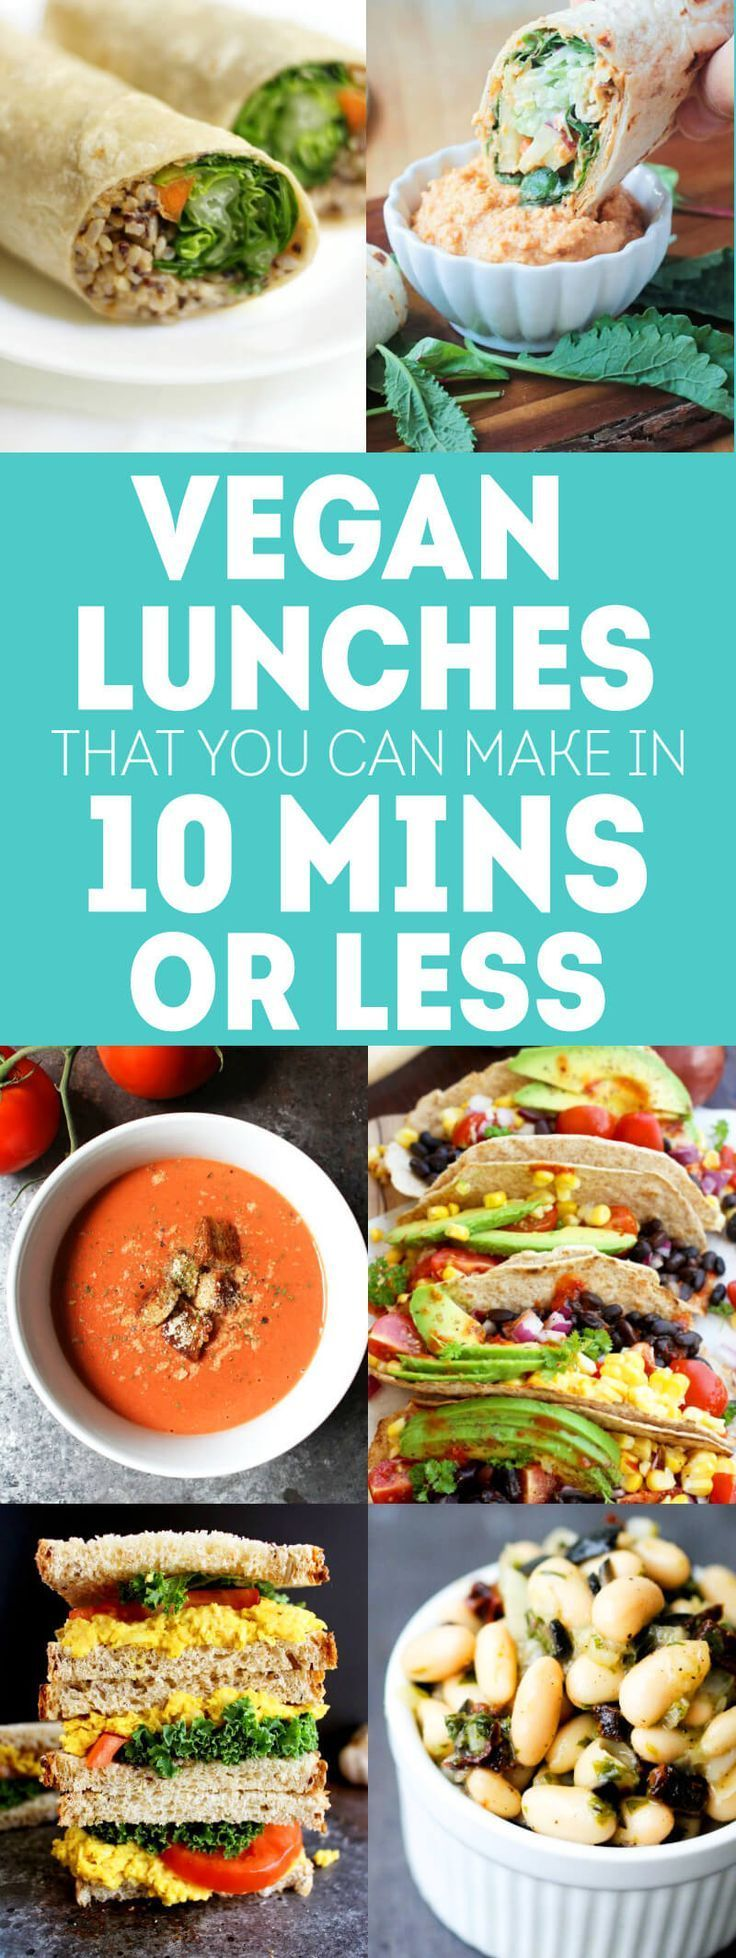 Vegan Lunch Recipes You Can Make in 10 Mins or Less!